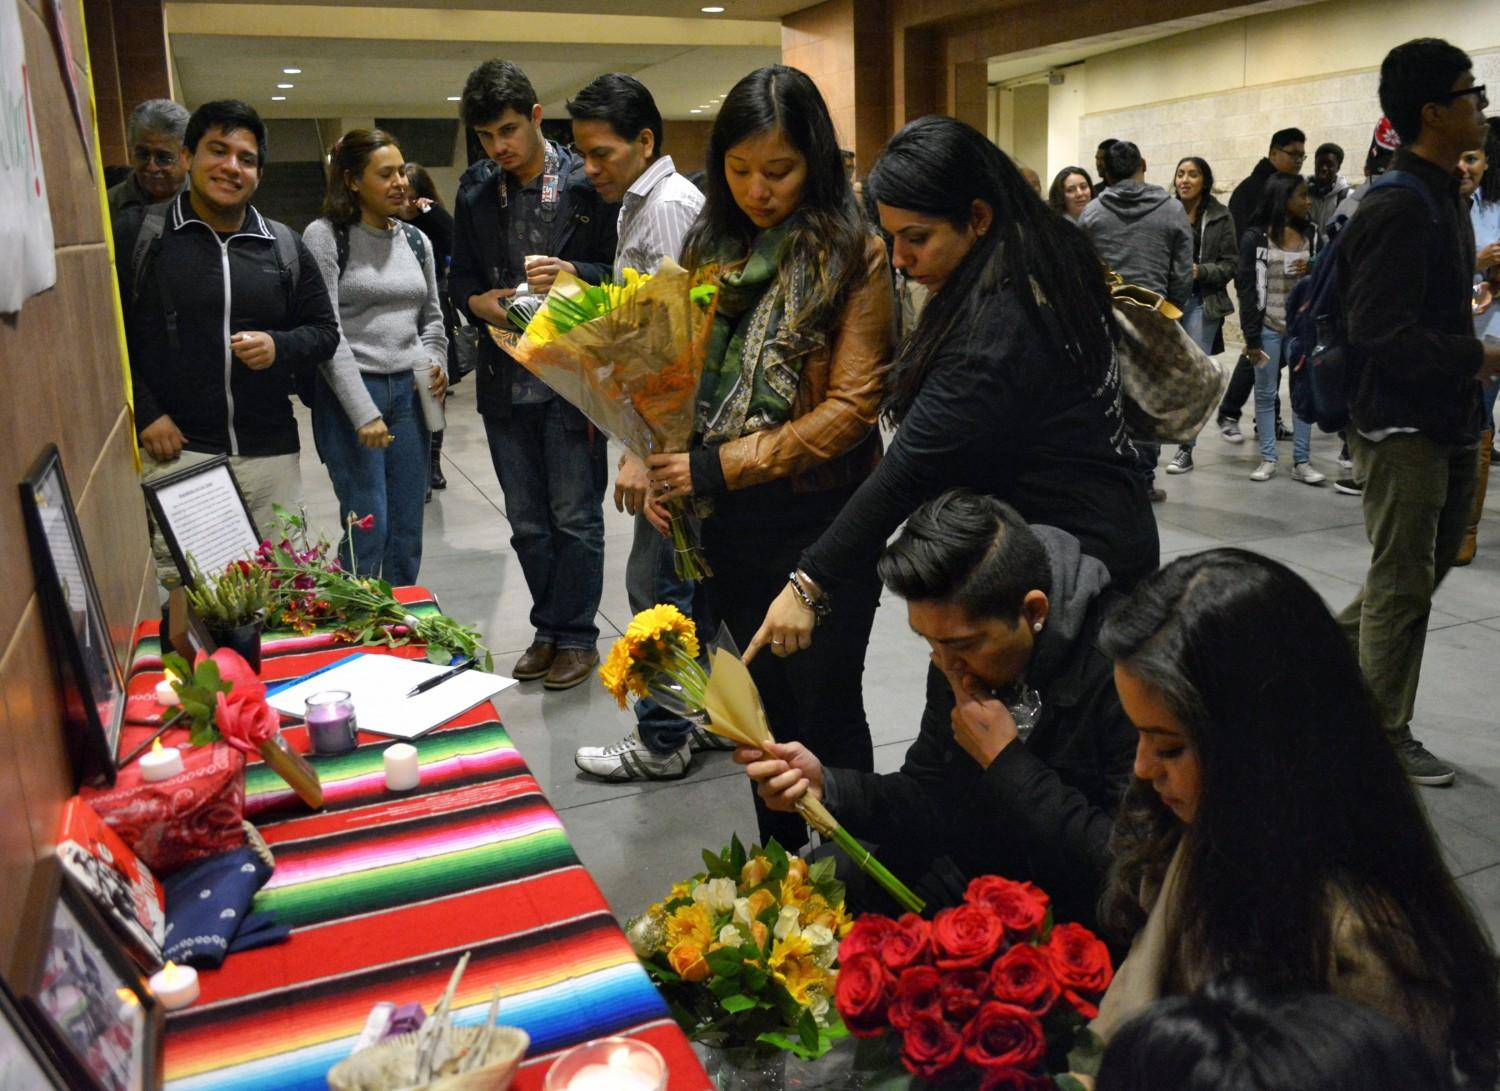 Students stand over altar for Jose Vargas